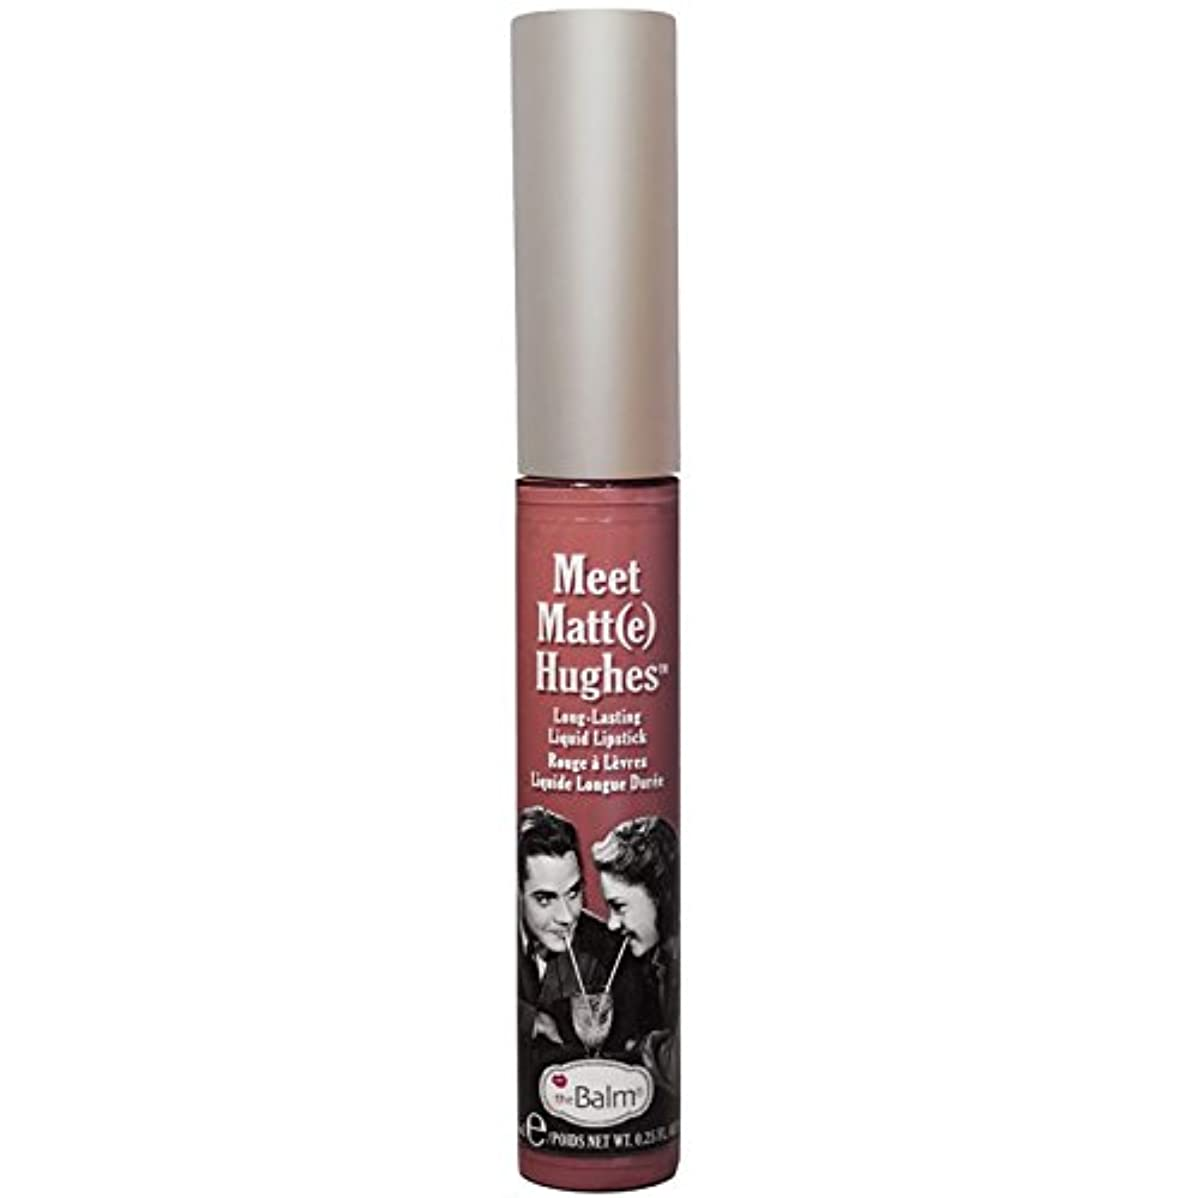 theBalm - Meet Matt(e) Hughes Long-Lasting Liquid Lipstick Sincere [並行輸入品]